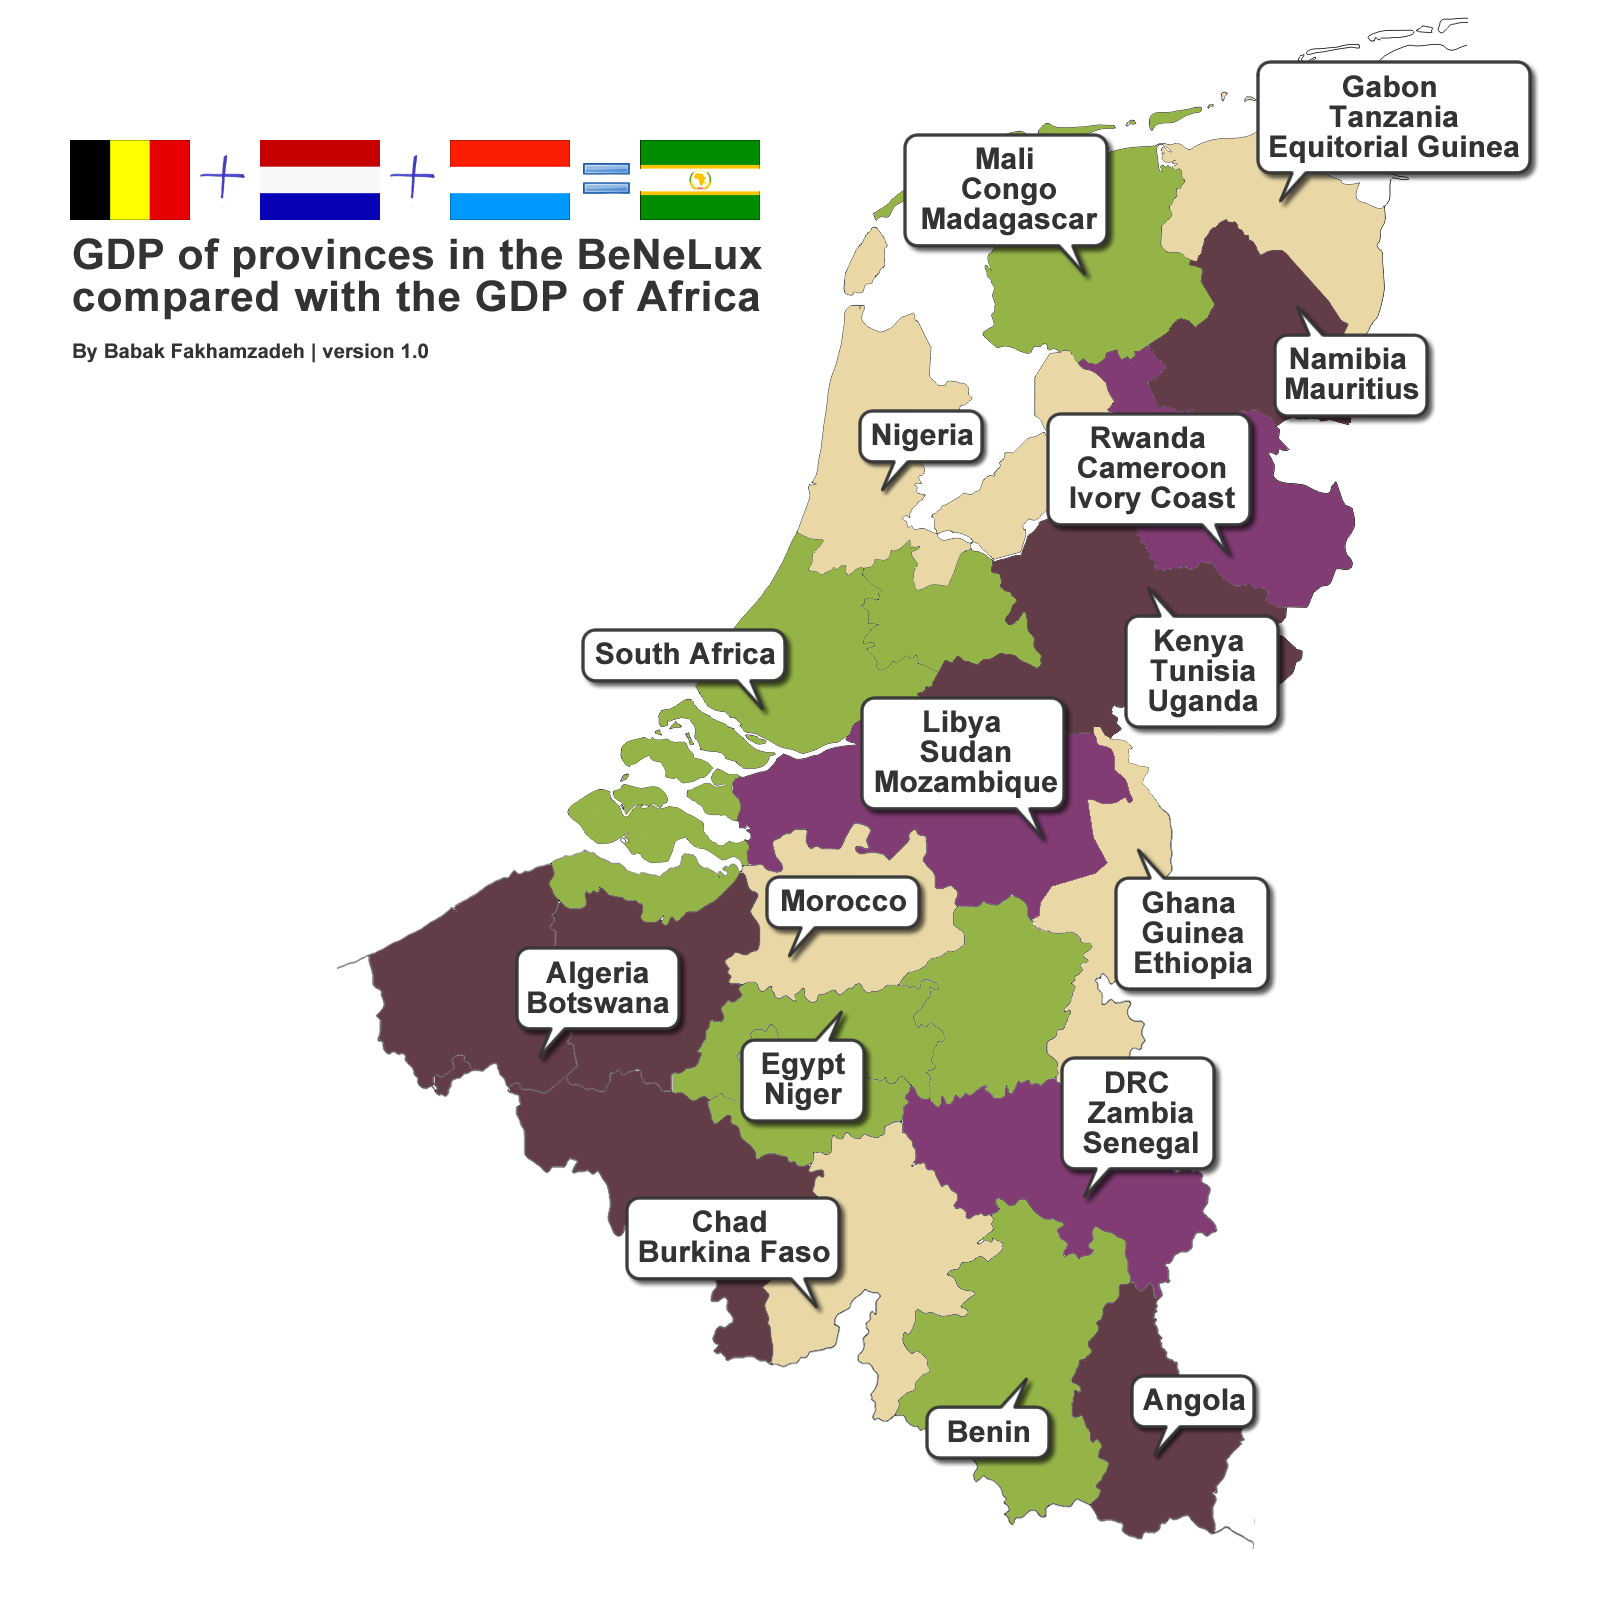 GDP of provinces in the Benelux compared with the GDP of Africa